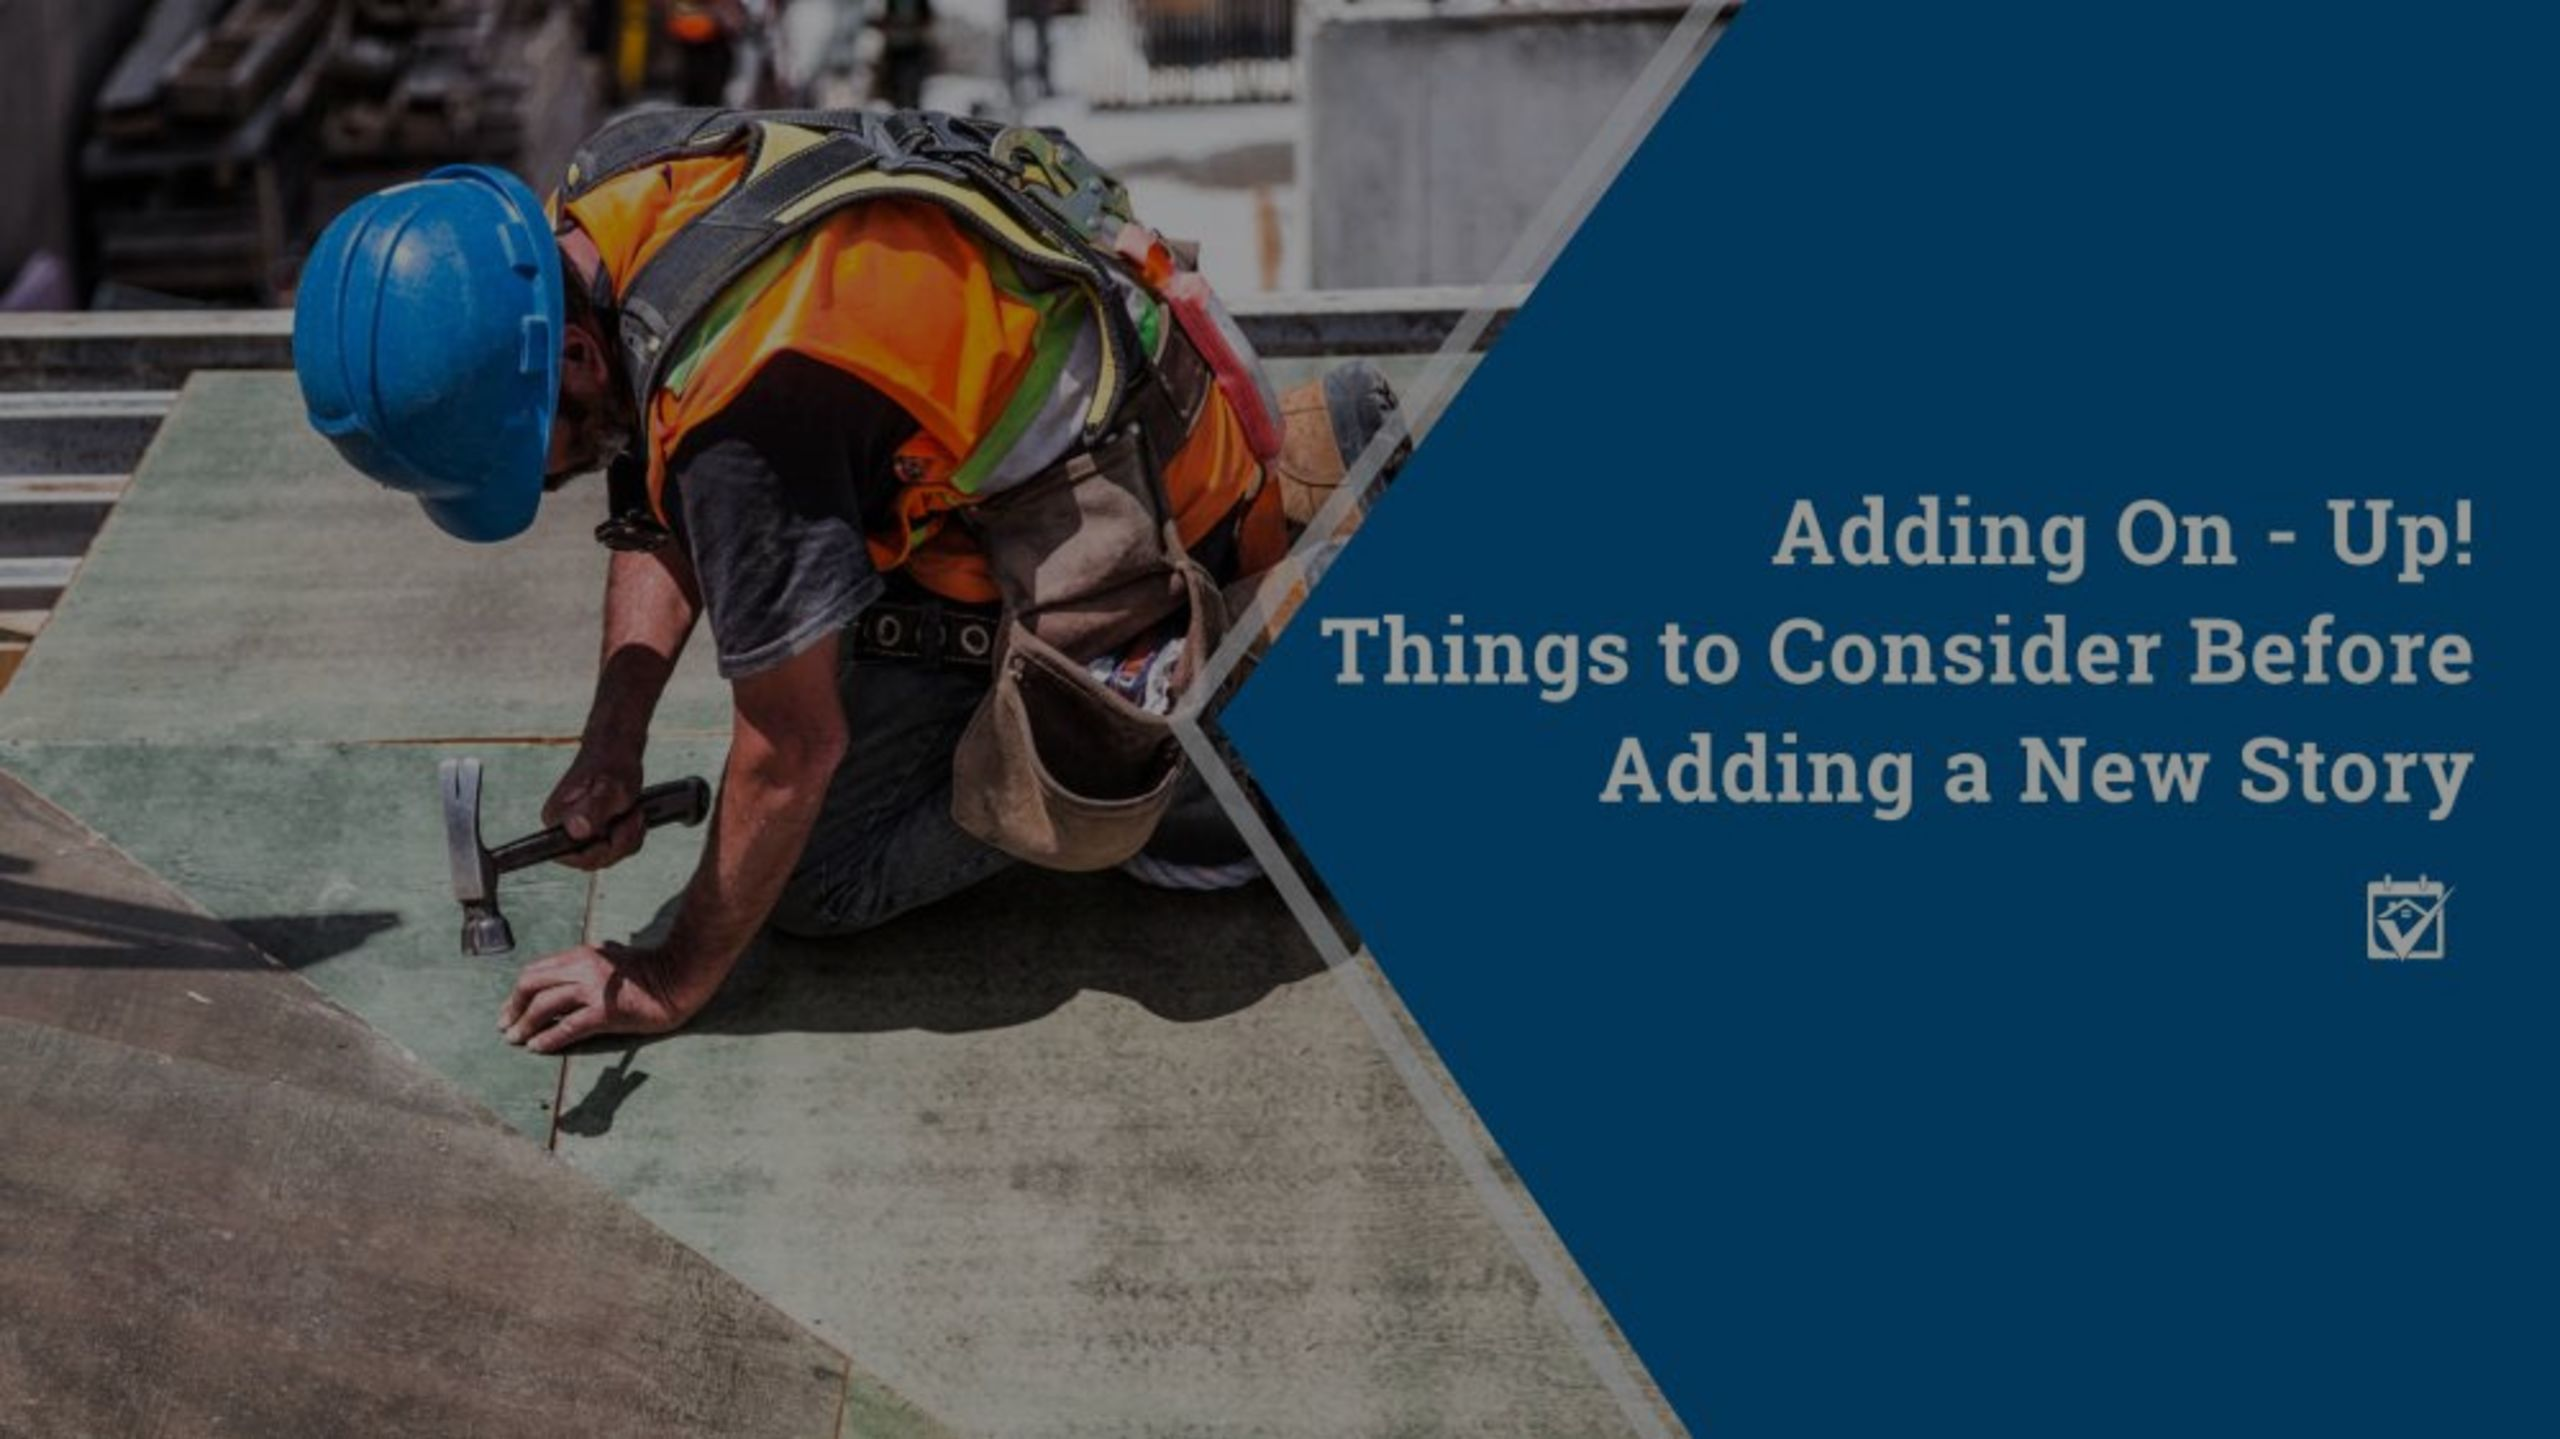 Adding On – Up! Things to Consider Before Adding a New Story